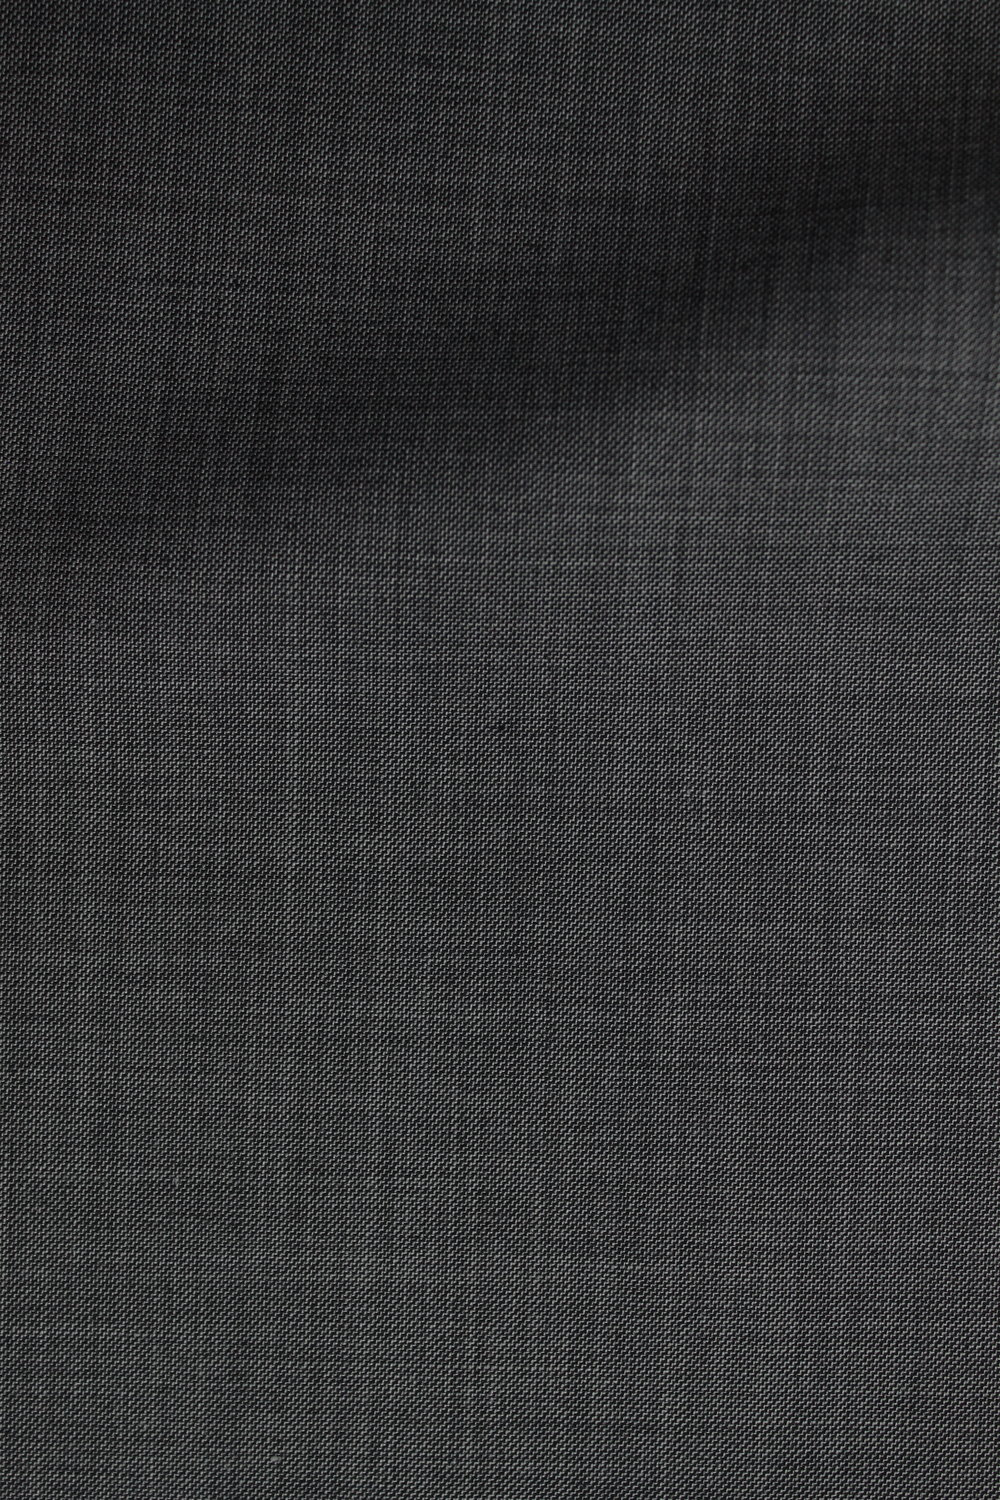 7610 Light Grey Nailshead Twill 280g.JPG